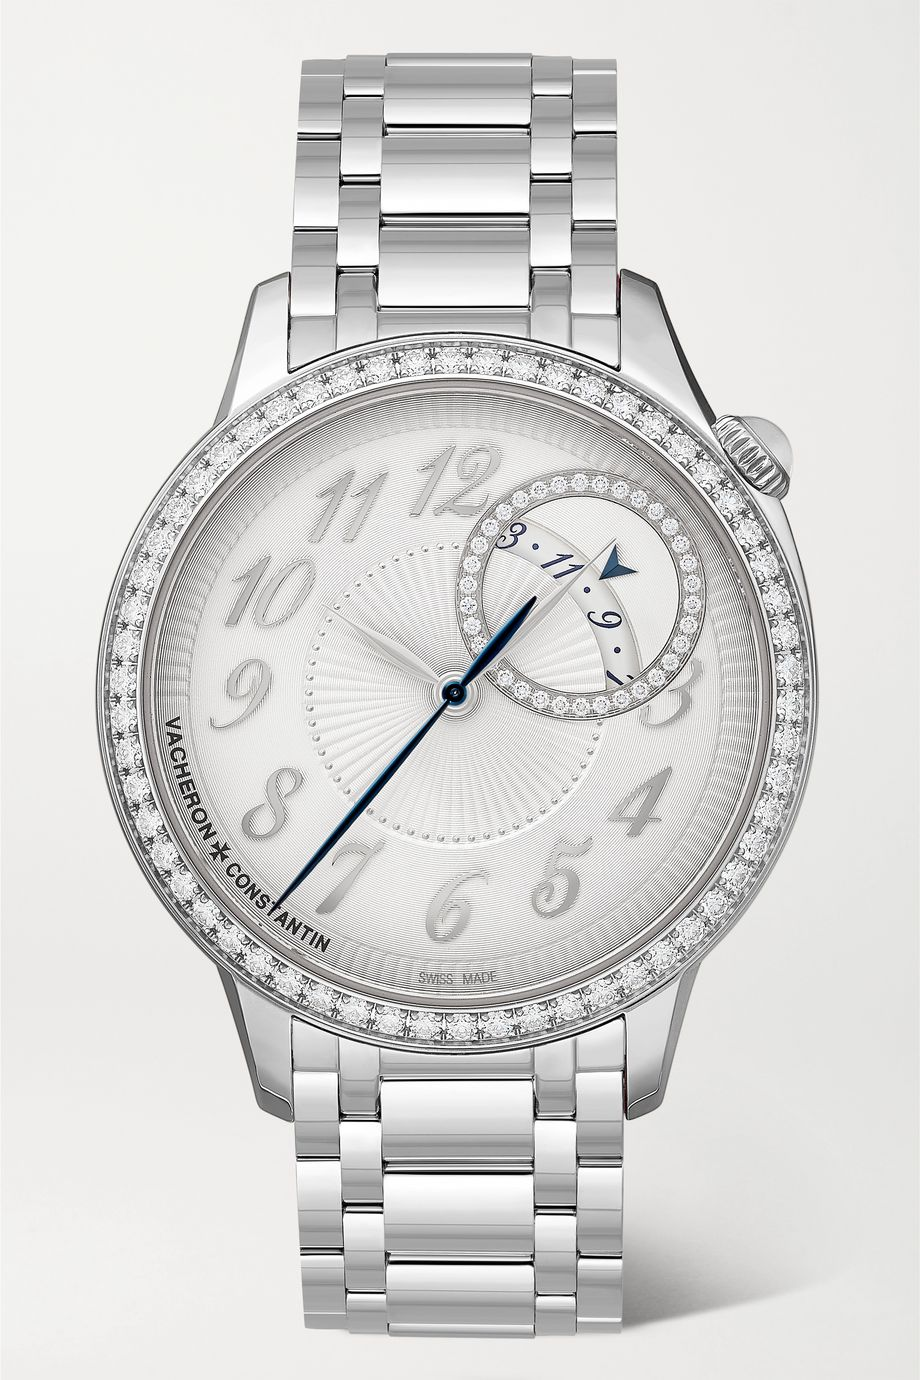 Vacheron Constantin Egérie Automatic 35mm stainless steel and diamond watch